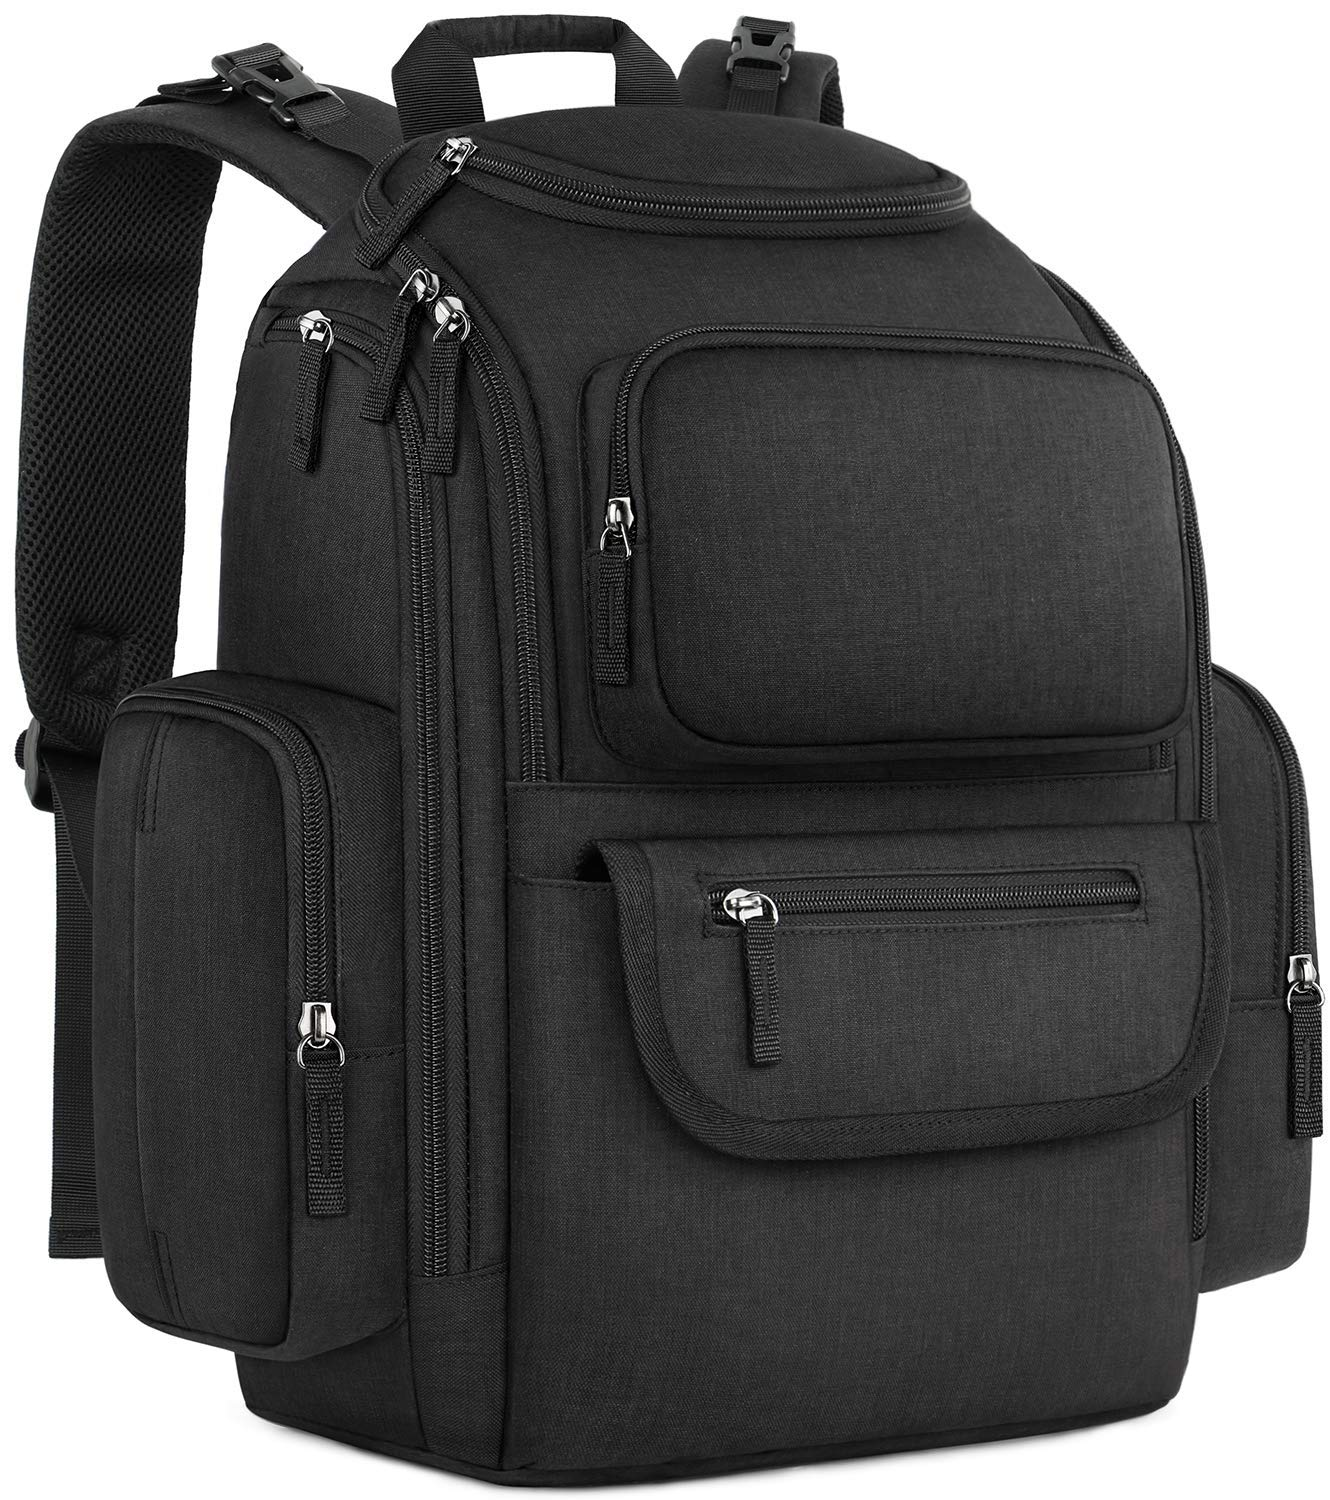 Diaper Bag Backpack, Large Storage Diaper Bag with Portable Changing Pad, Travel Water Resistant Baby Diaper Backpack for Men Women with Insulated Pockets, Stroller Straps, Black